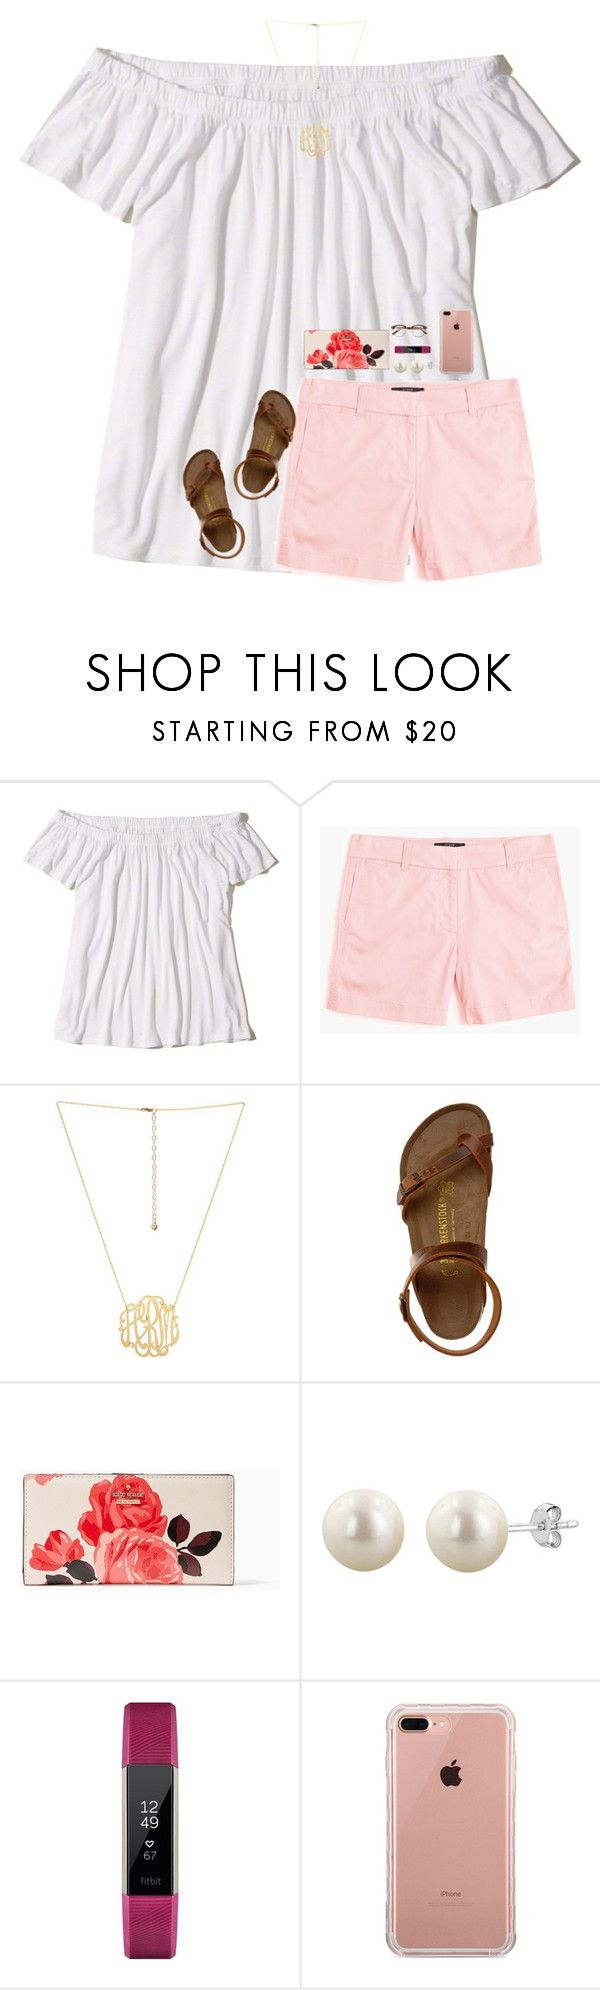 """""""picked a hoco dress!"""" by harknessl ❤ liked on Polyvore featuring Hollister Co., J.Crew, Birkenstock, Kate Spade, Fitbit, Belkin and preppybylauren"""